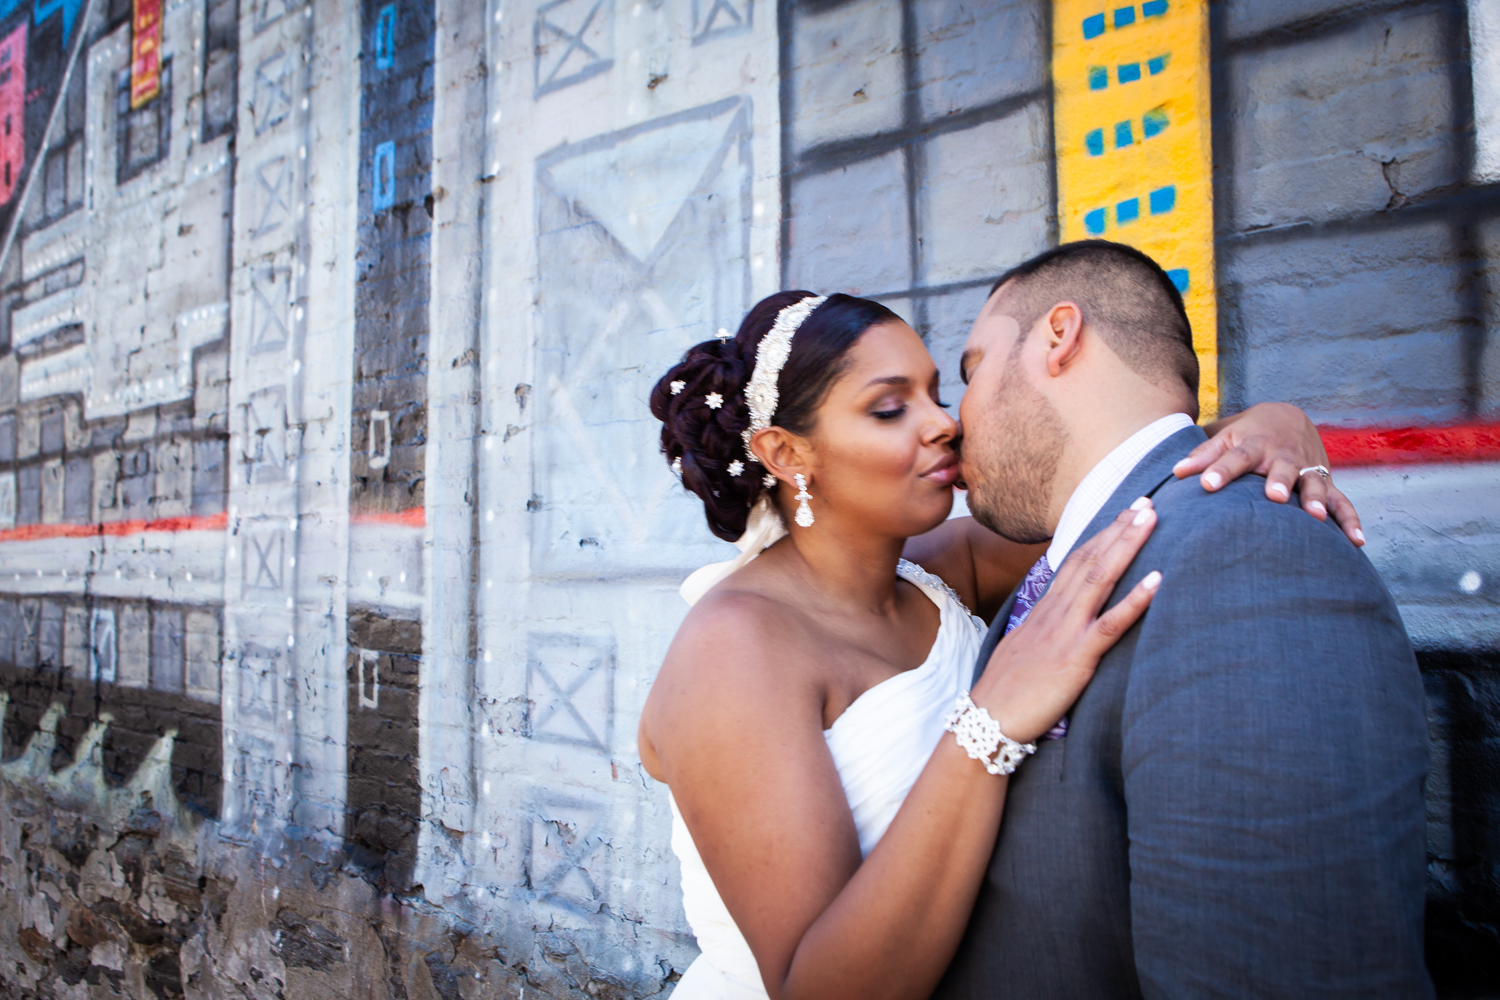 Bride and groom kissing in front of graffiti mural